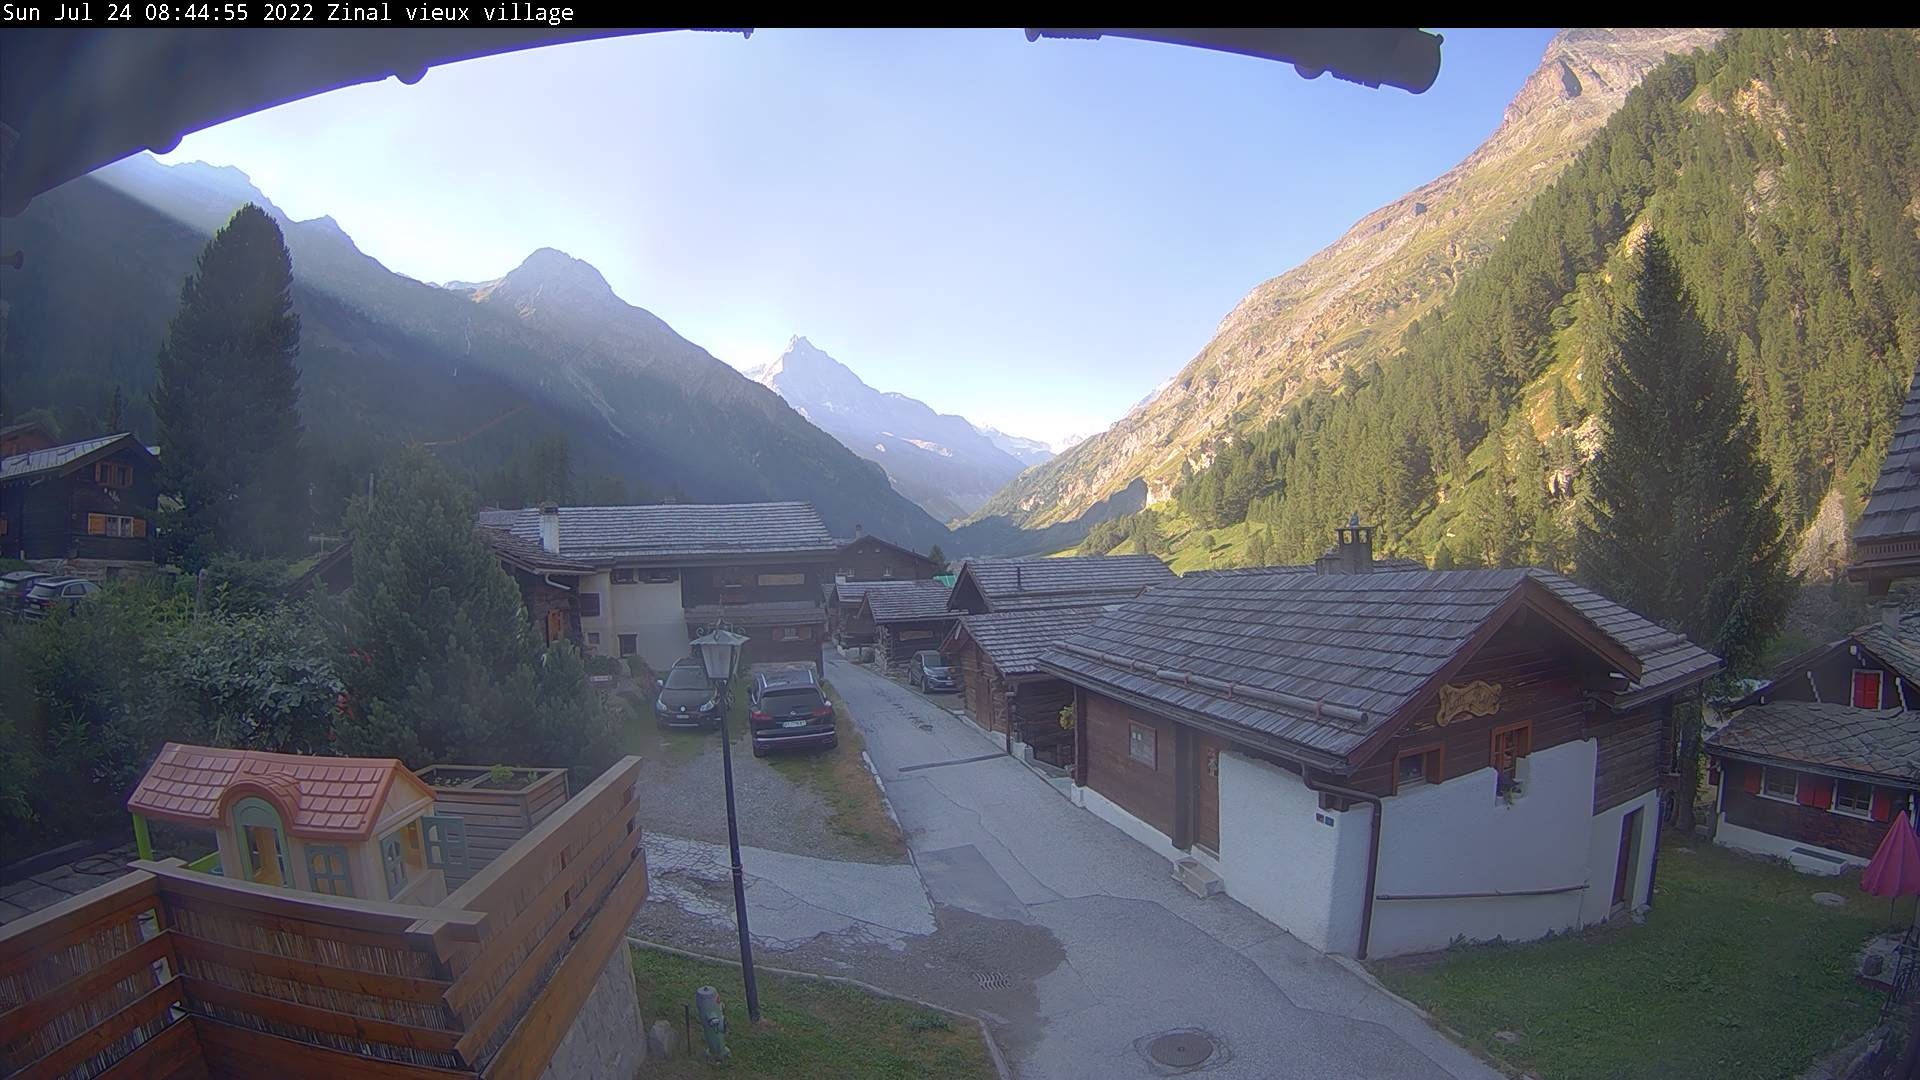 Webcam Zinal village - Alt. 1670 m.